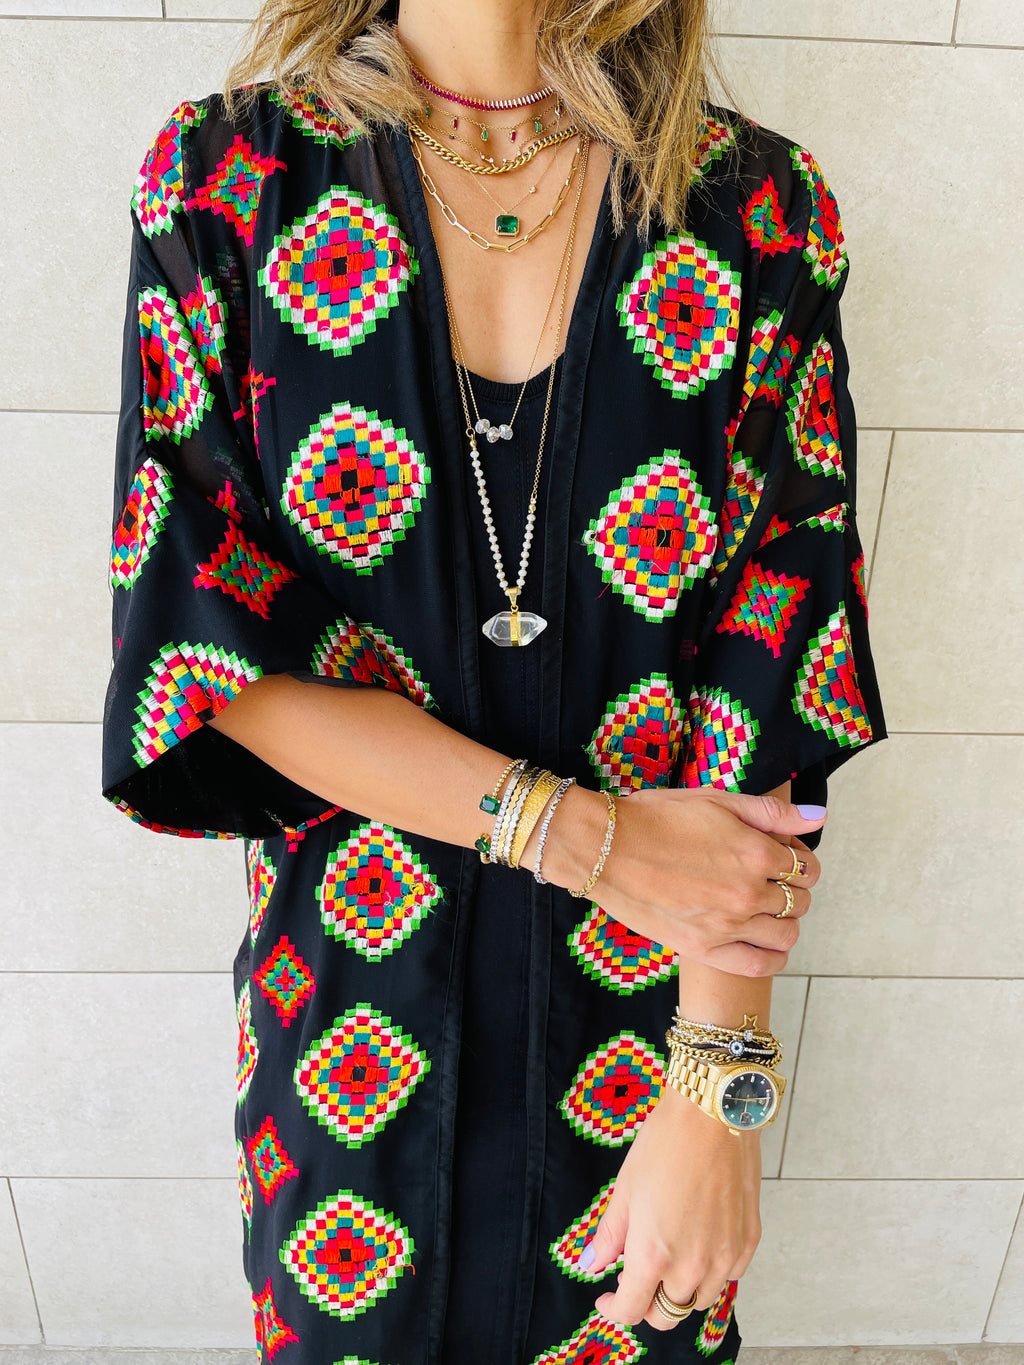 The Geometric Embellished Royal Kimono